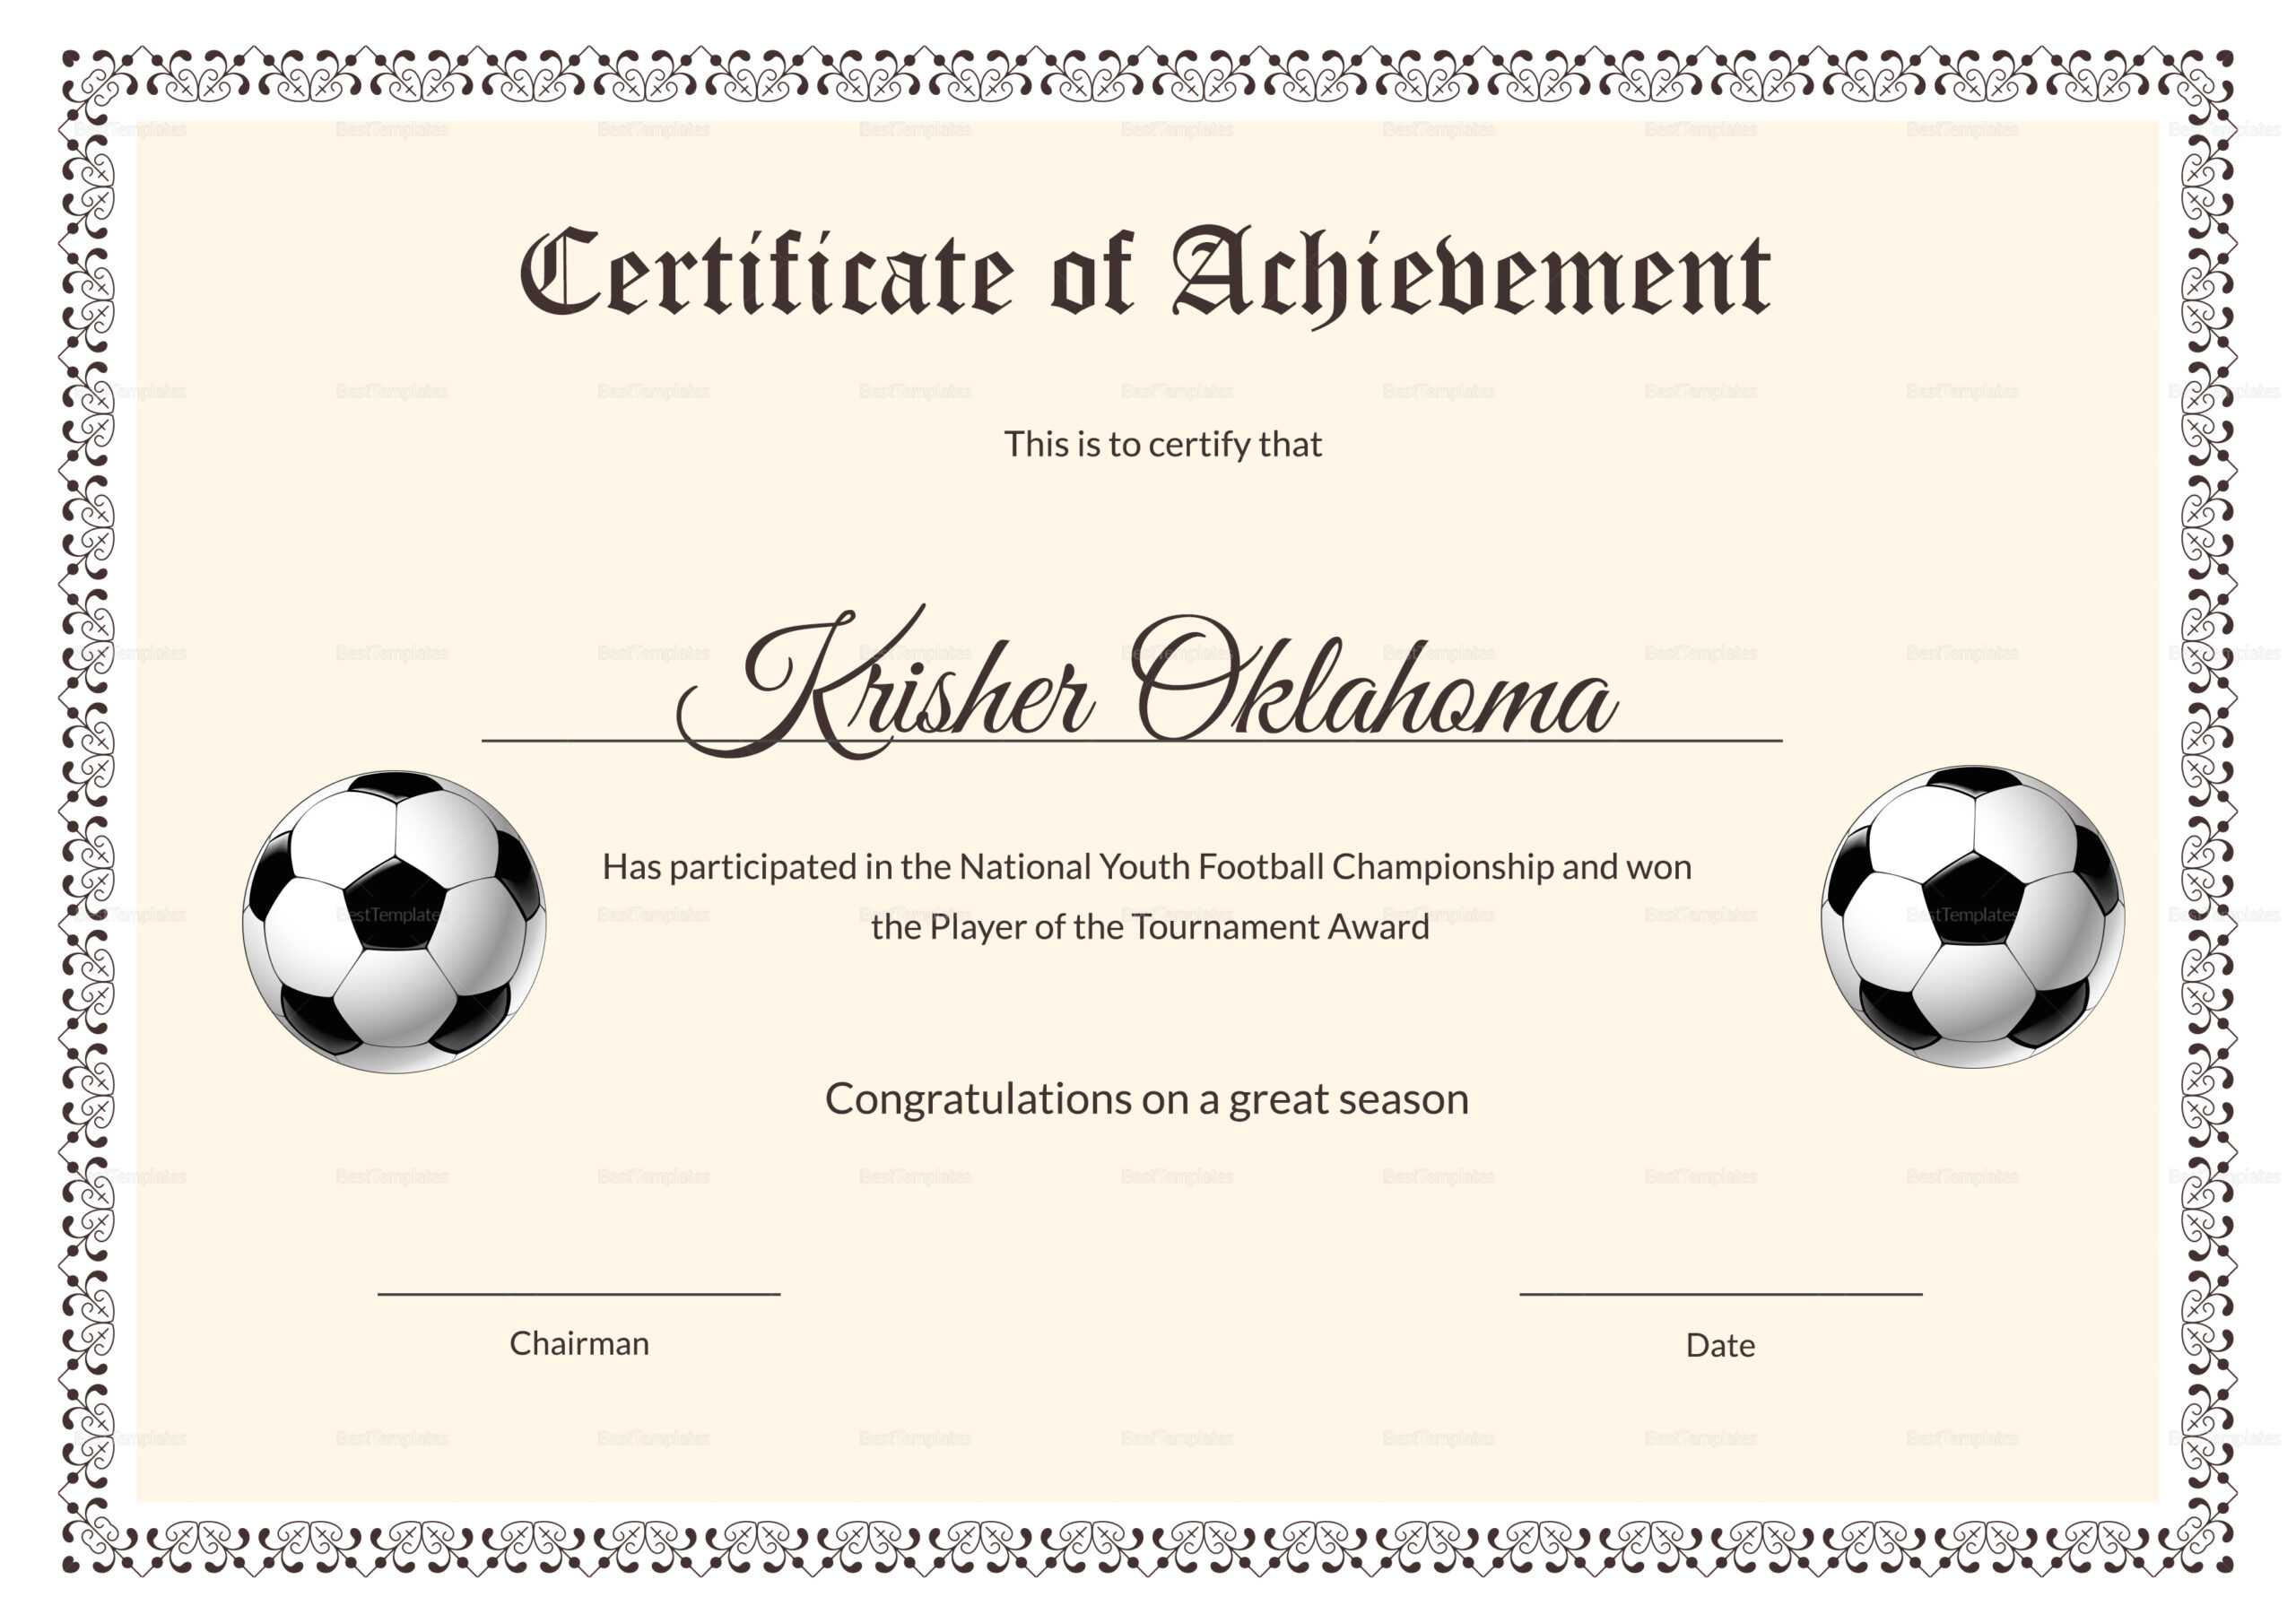 62A11 Soccer Award Certificates | Wiring Library In Football Certificate Template